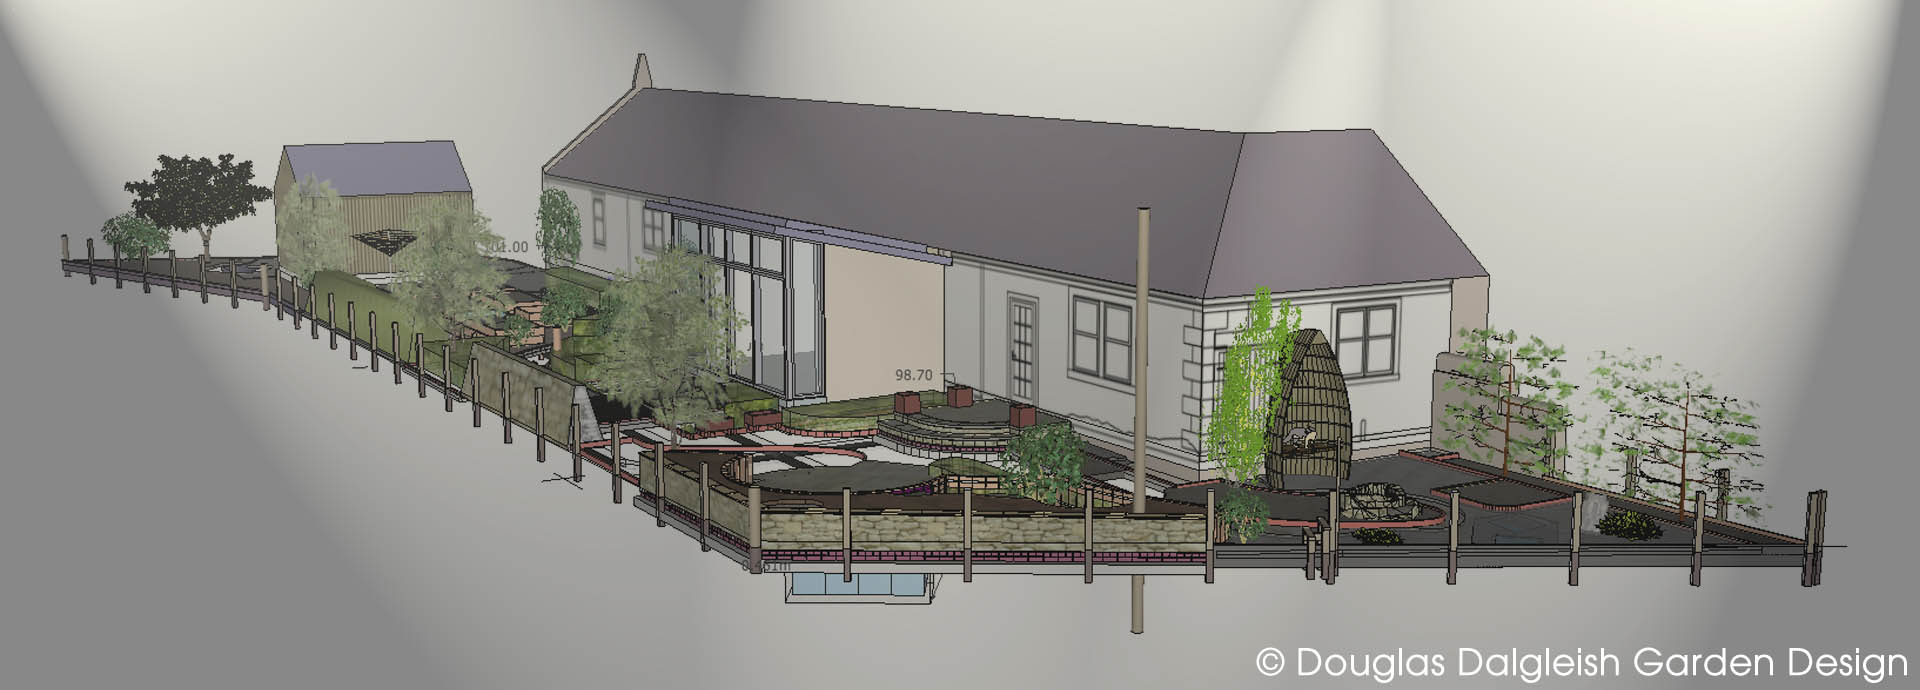 3D visual showing proposed design for rural garden